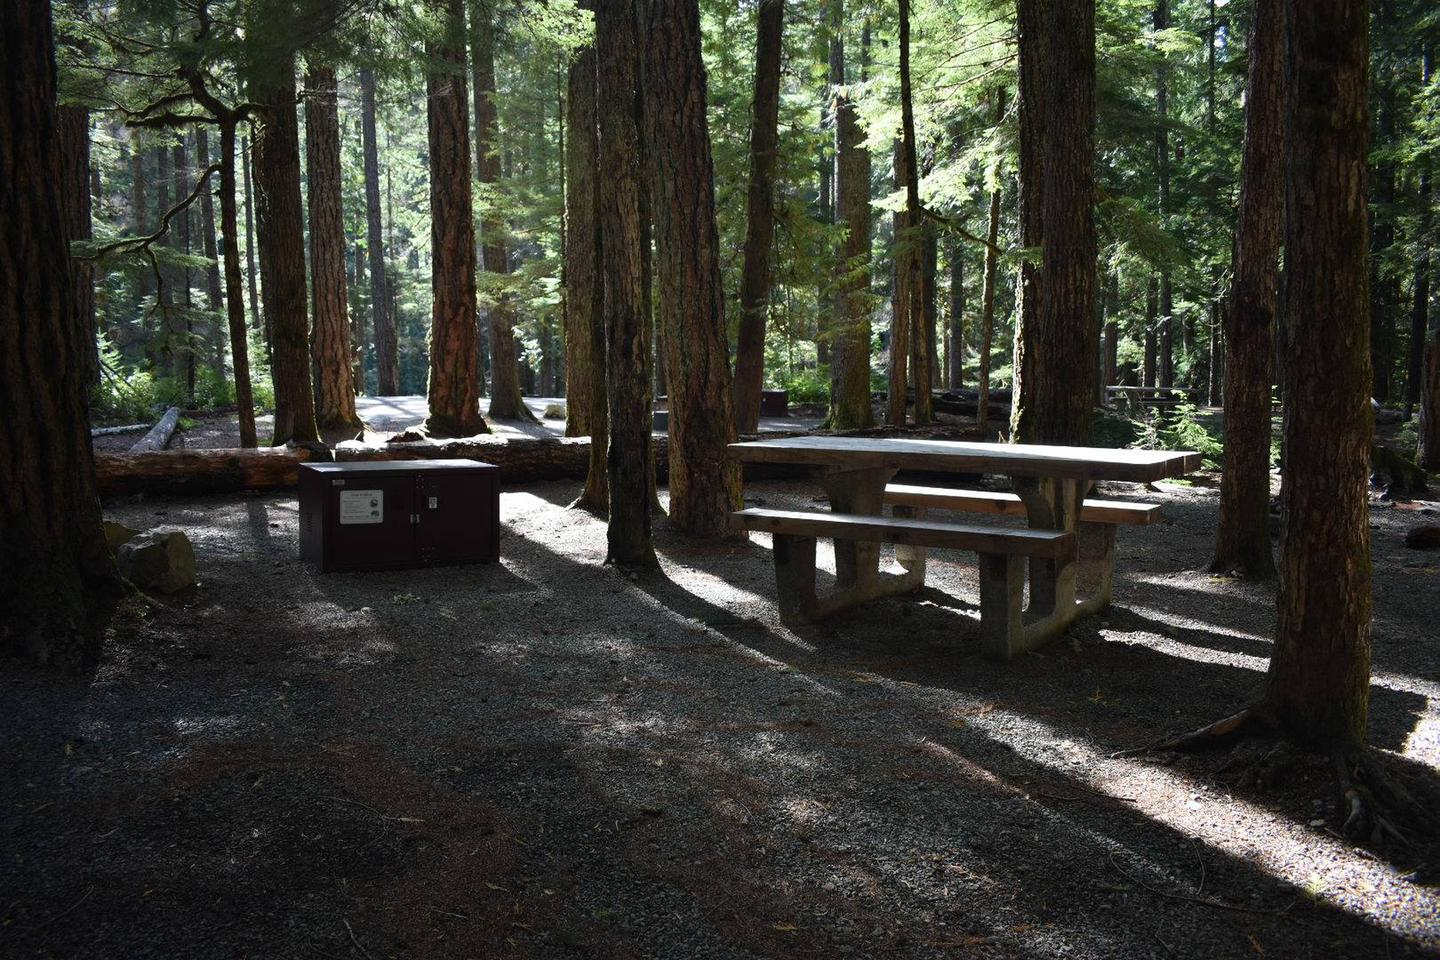 Ohanapecosh Campground - Site D025 AmenitiesCampers are provided with a picnic table, food storage box, and fire pit.